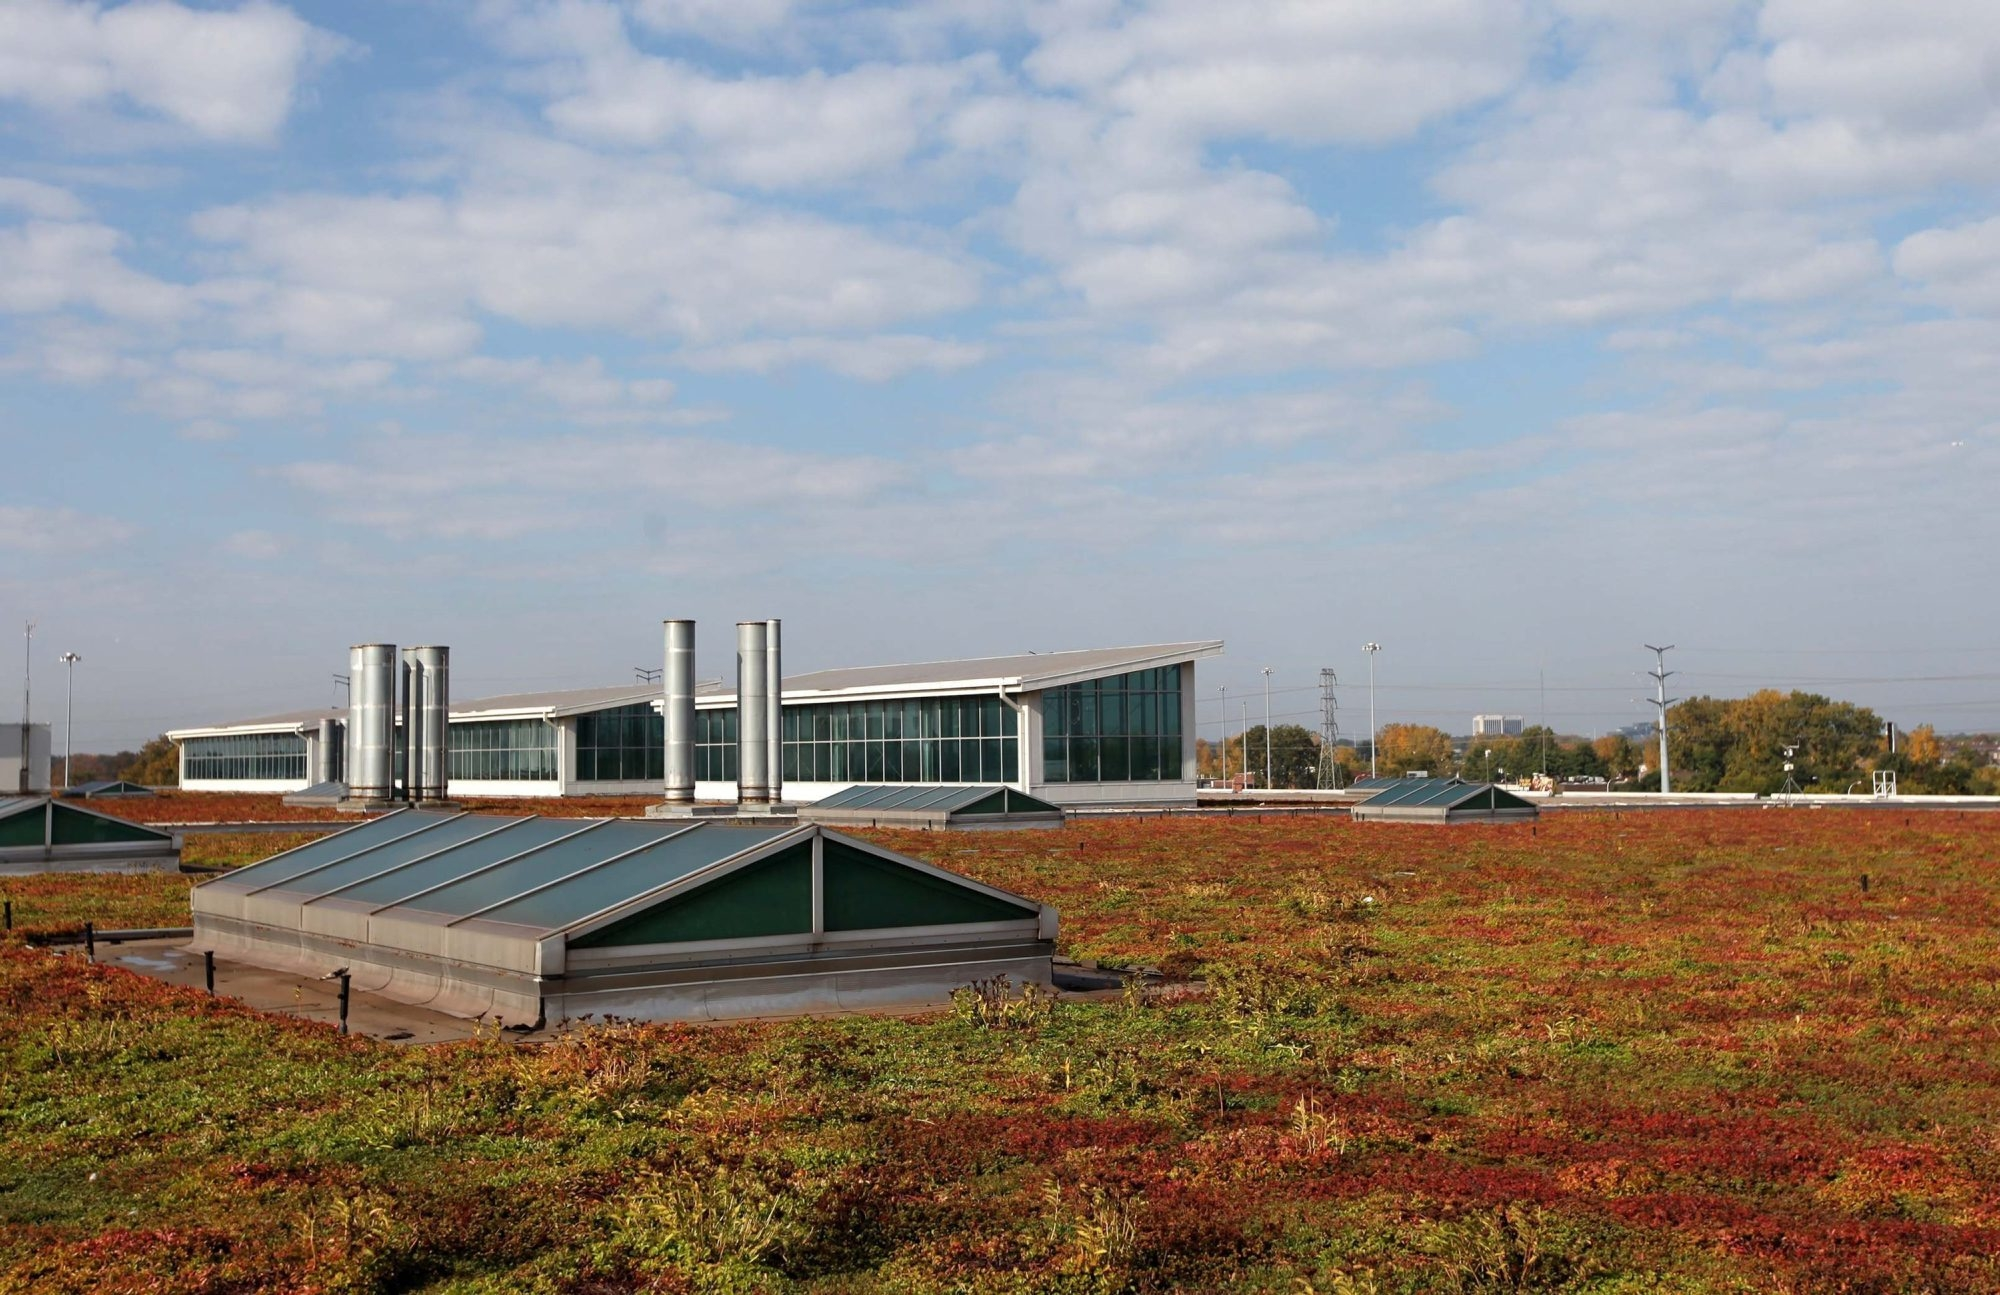 Skylights and other parts of the structure rise through the rooftop garden on the Ford Dearborn Truck Pant in Dearborn, Mich. The living roof has been on the building for 10 years and covers 10.4 acres.